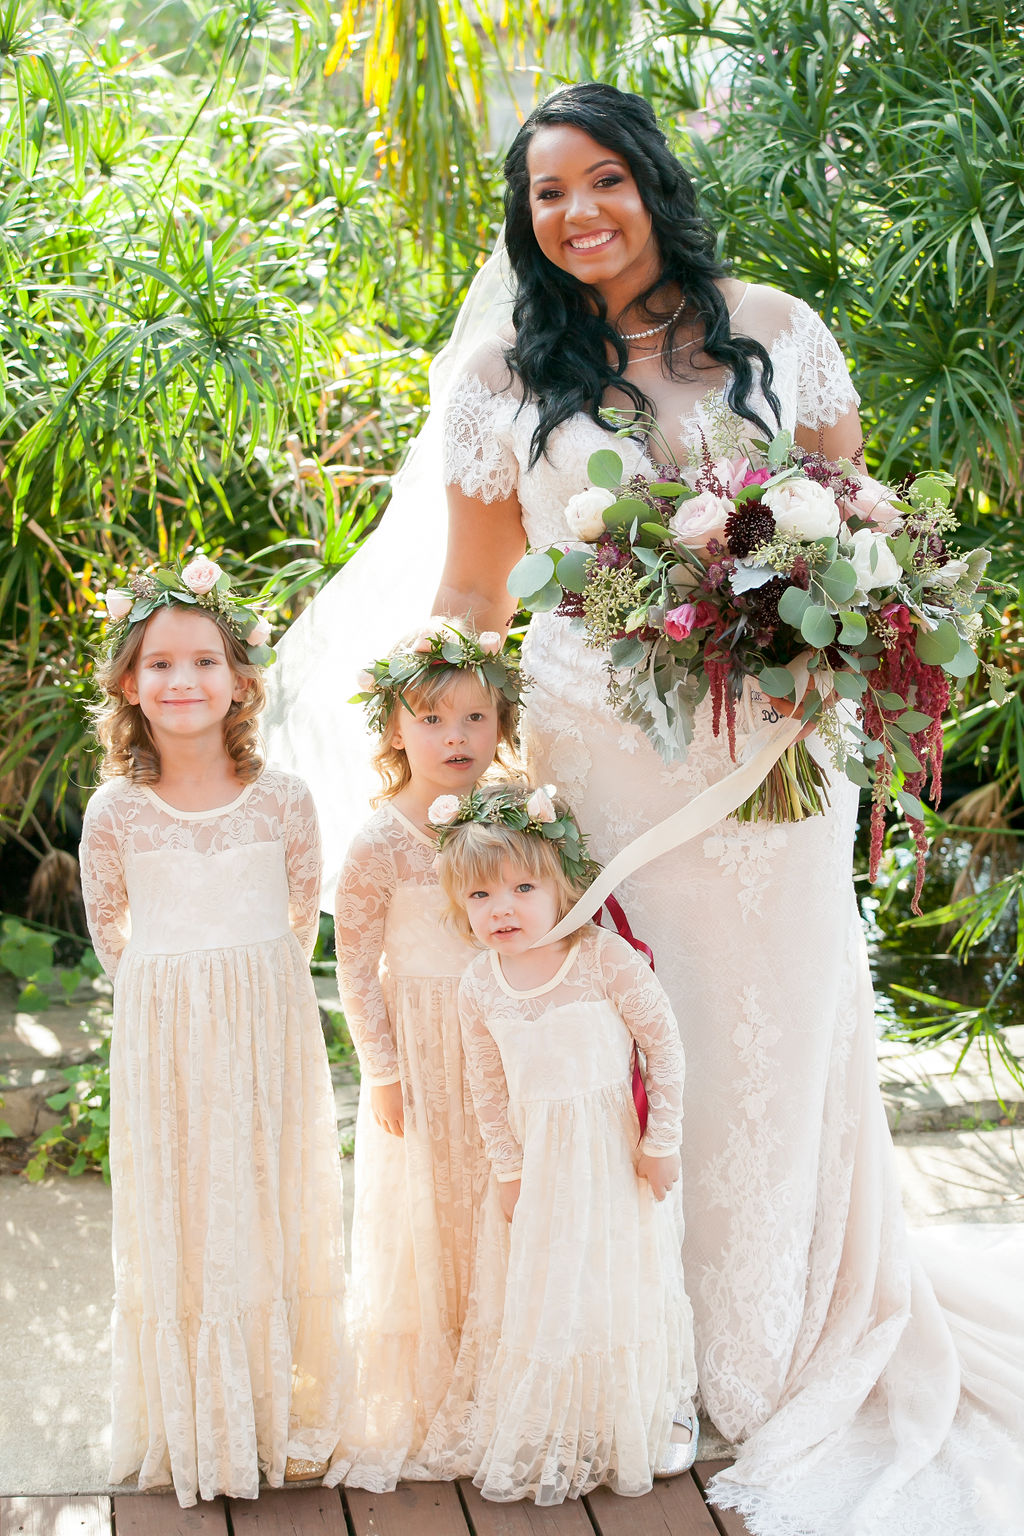 Bluegrass Chic - Bride and her flower girls